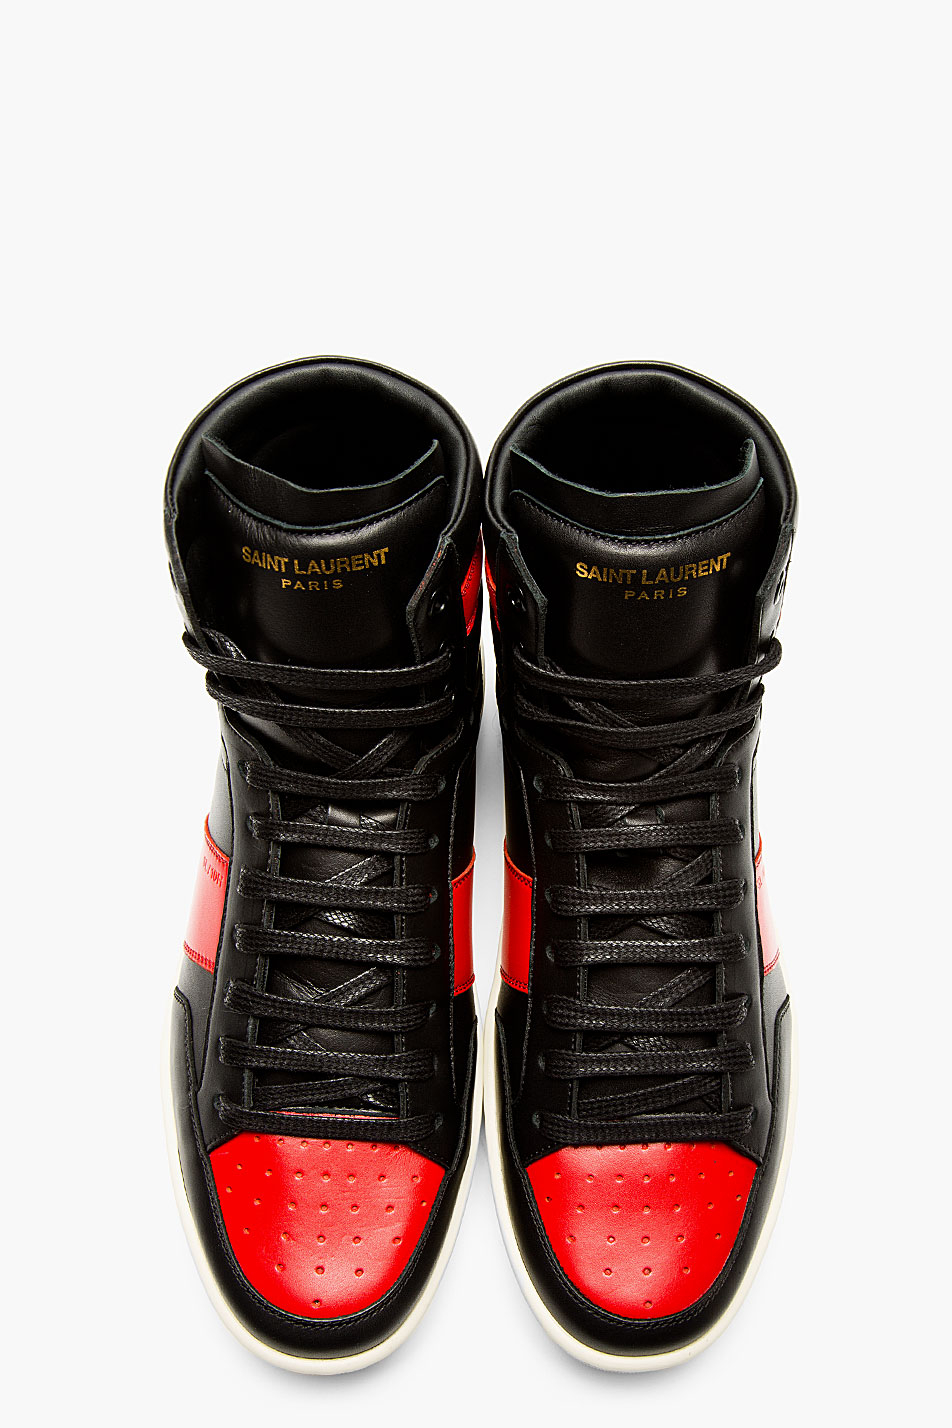 Lyst Saint Laurent Black And Red Leather High Top